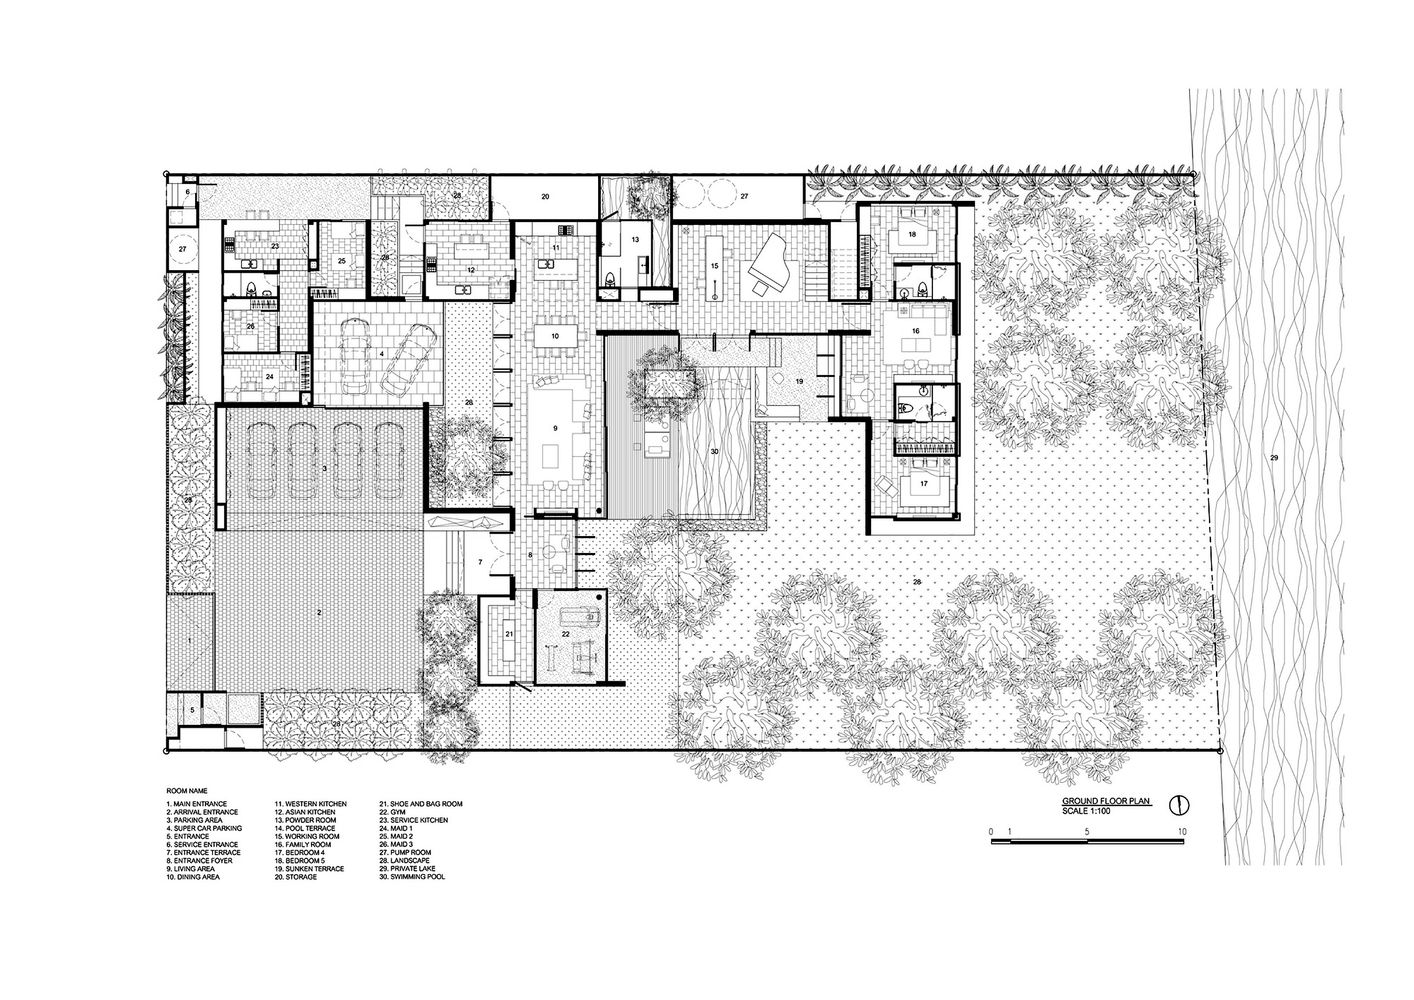 Gallery Of Lsr113 Ayutt And Associates Design 19 Courtyard House Plans Contemporary House Floor Plans